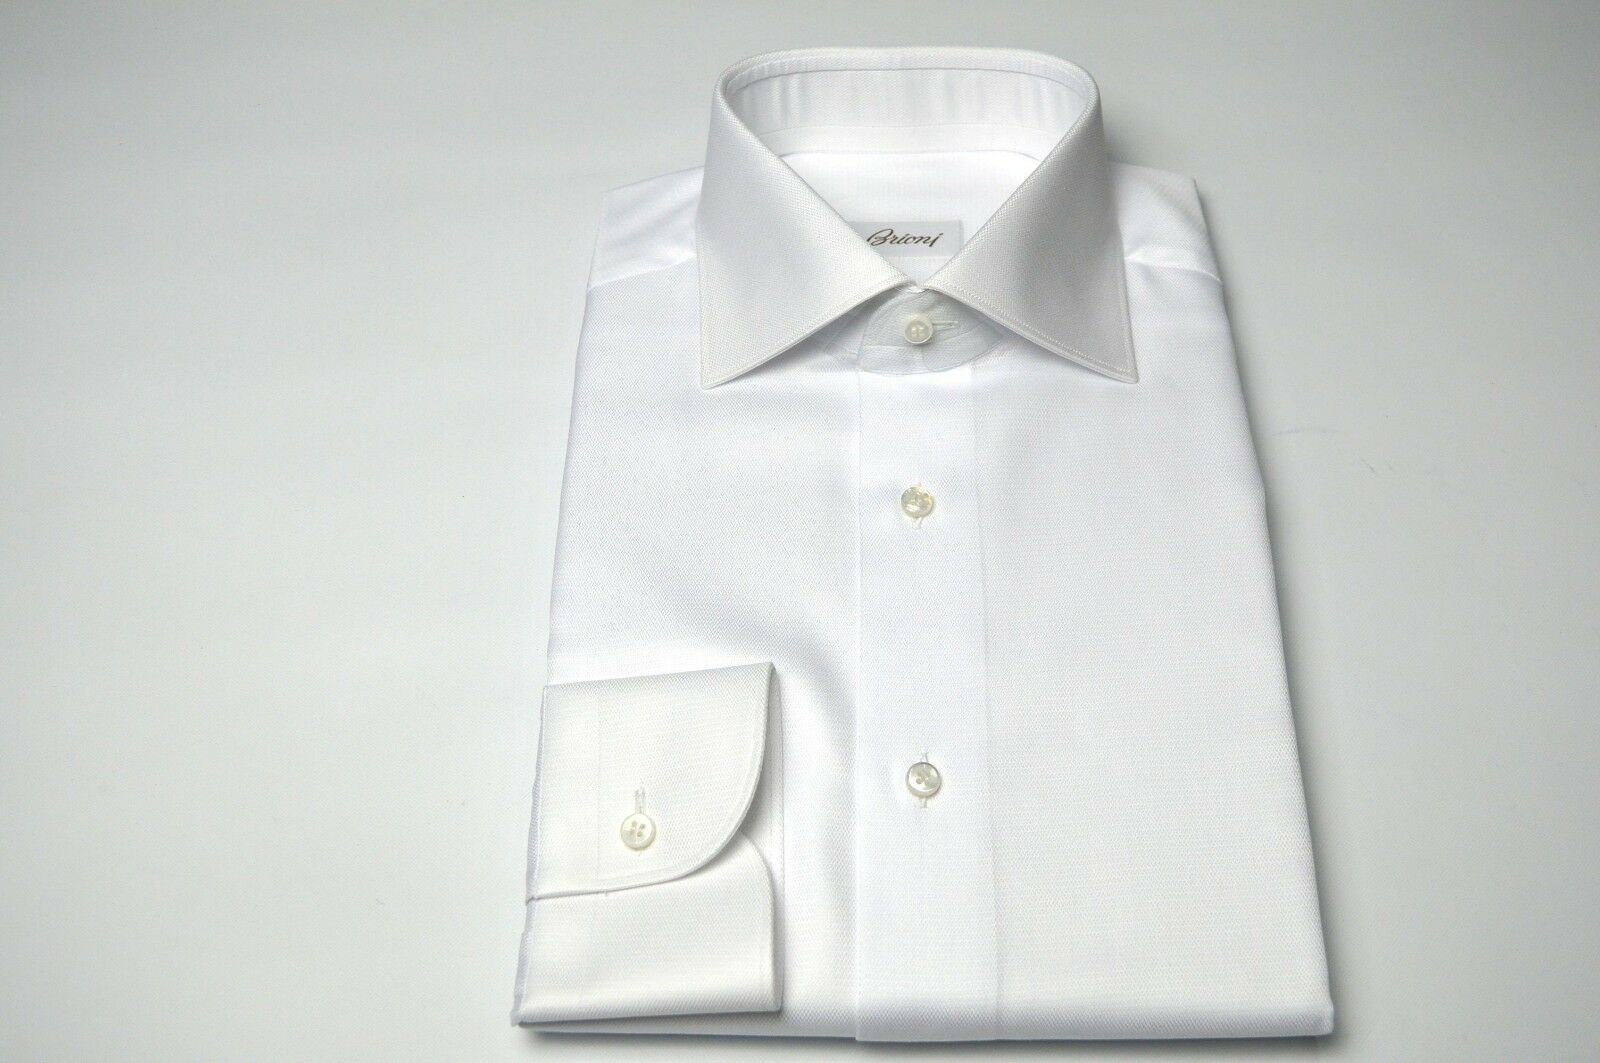 99a0c52a5 Dress White SHIRT 100% Cotton Size 16.5 Us 42 Eu (SE73) NEW BRIONI ...